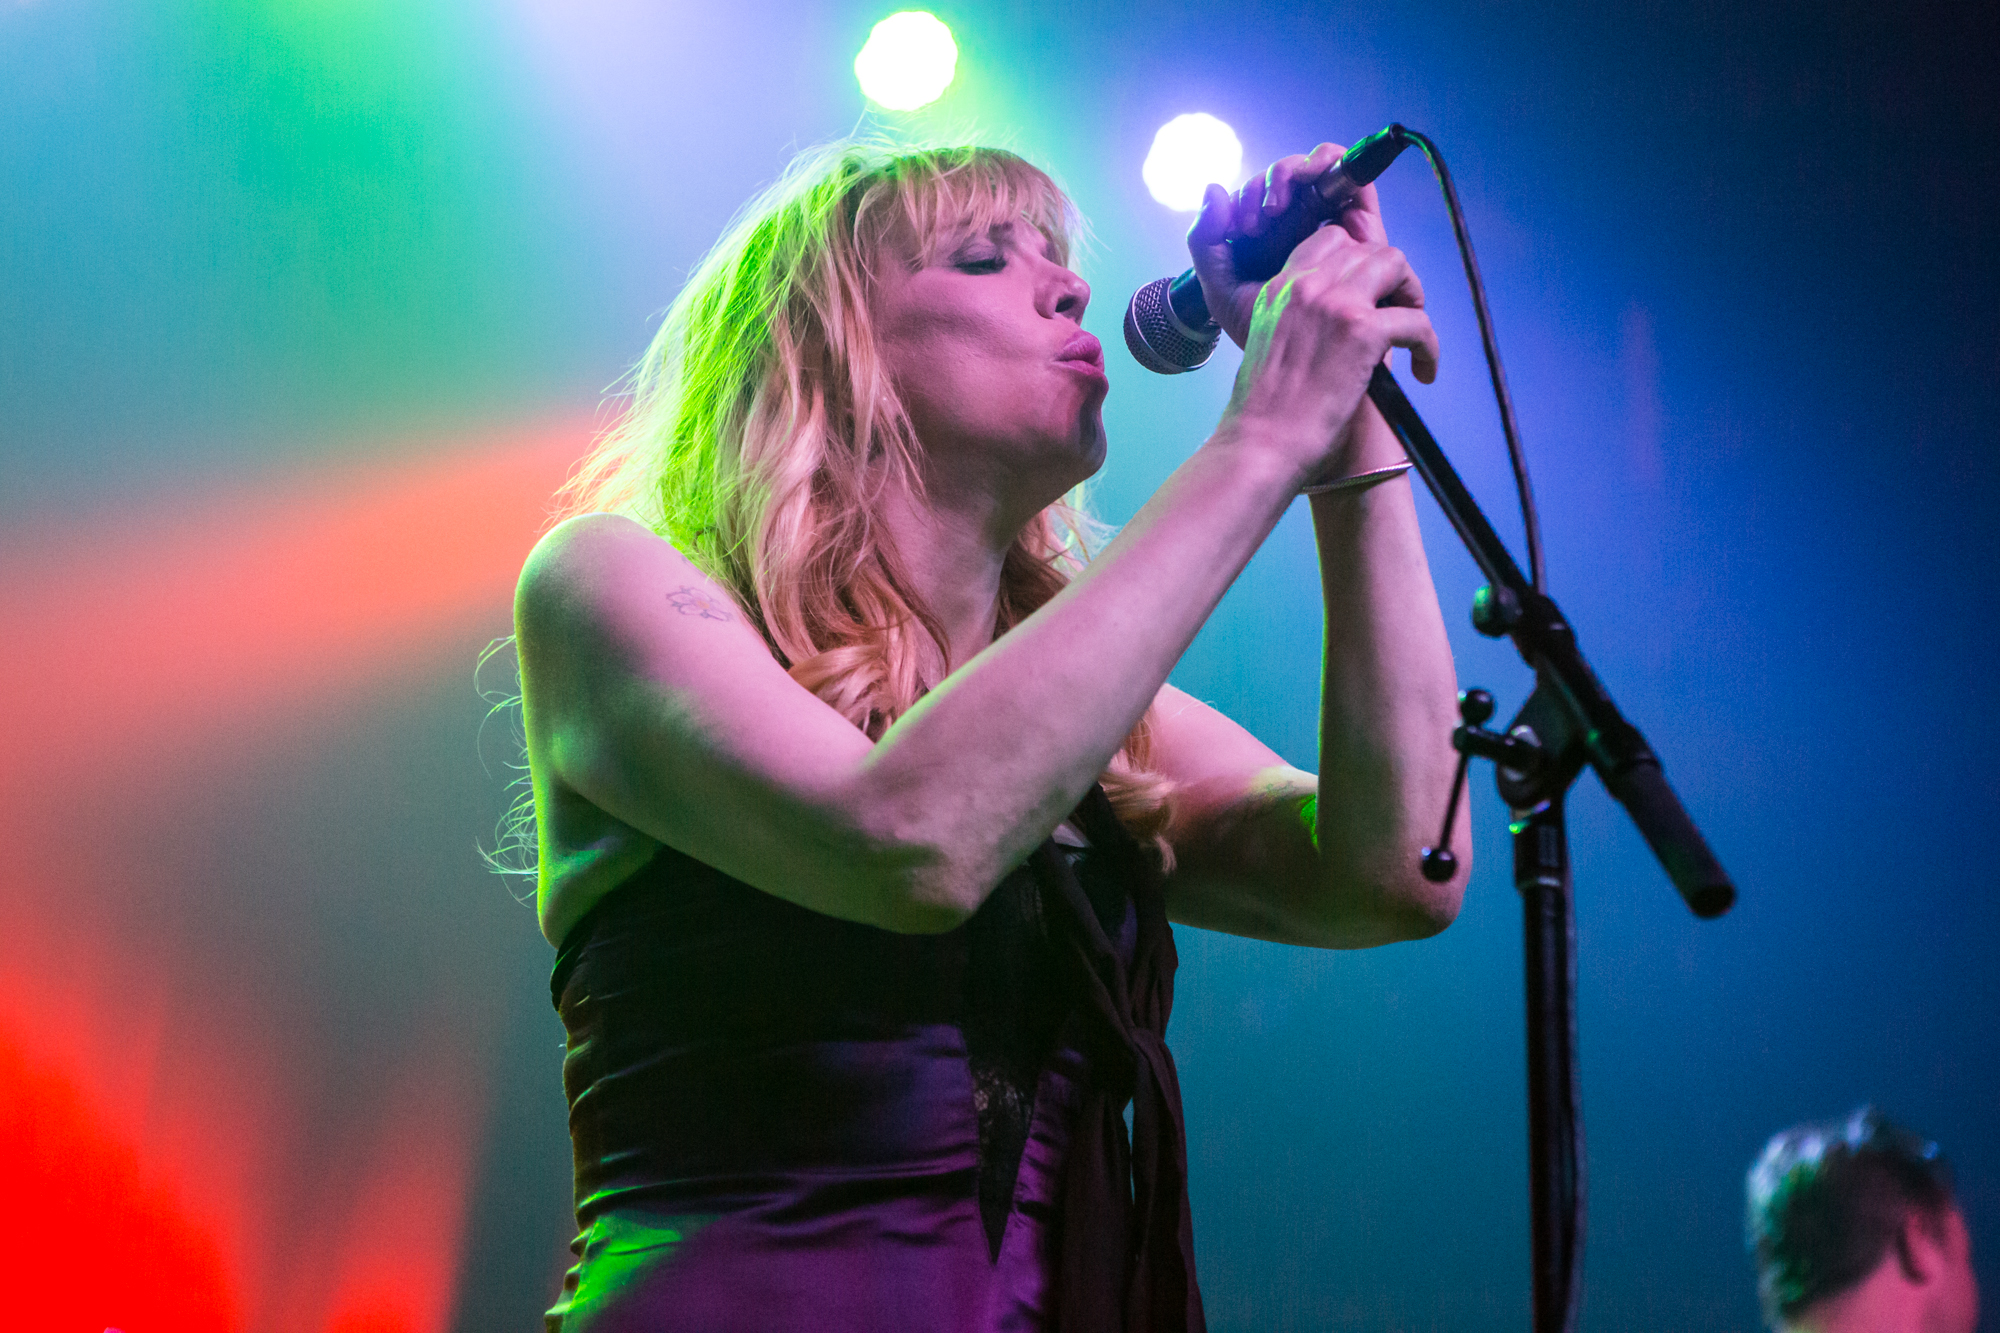 Courtney Love // Photo by Philip Cosores